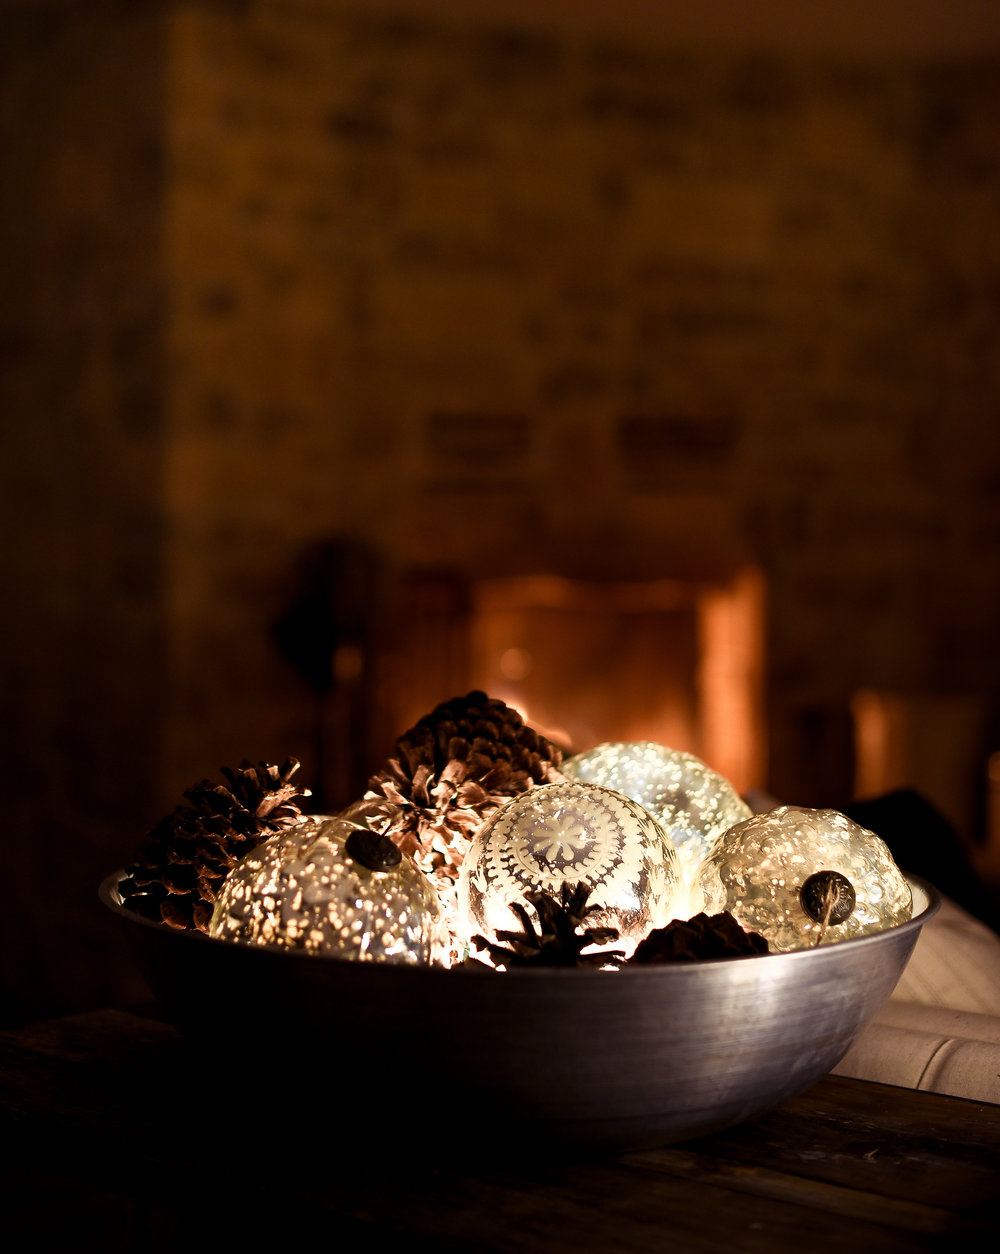 A bowl of mercury glass. - I absolutely love mercury glass, especially when it is lit up at night time! I filled my large zinc bowl full of oversized ornaments and pinecones which look beautiful at night!